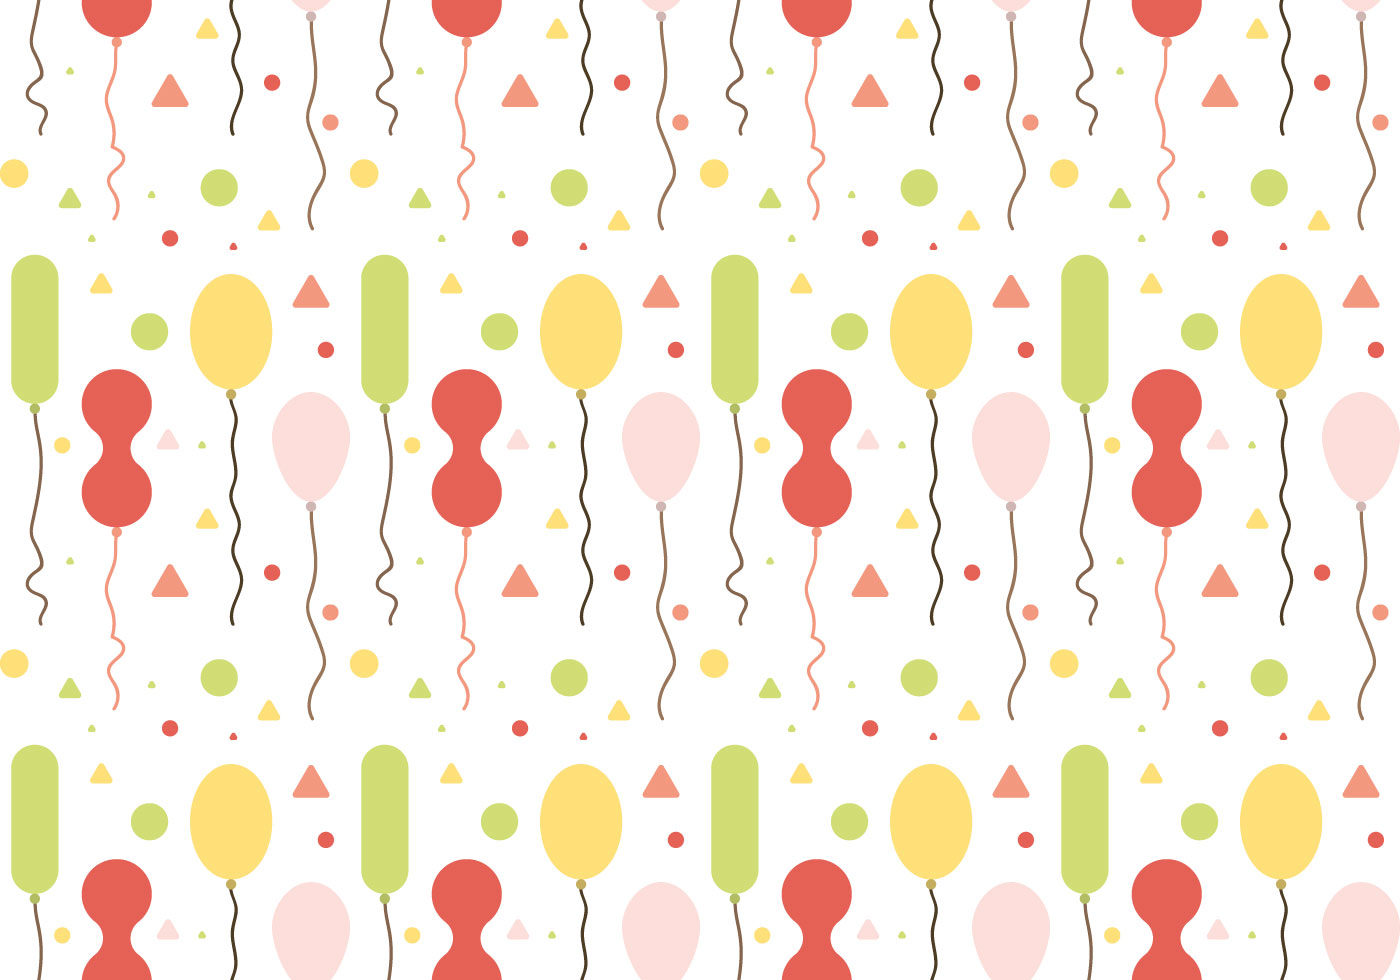 Free Balloons Pattern Vector 1 Download Free Vector Art